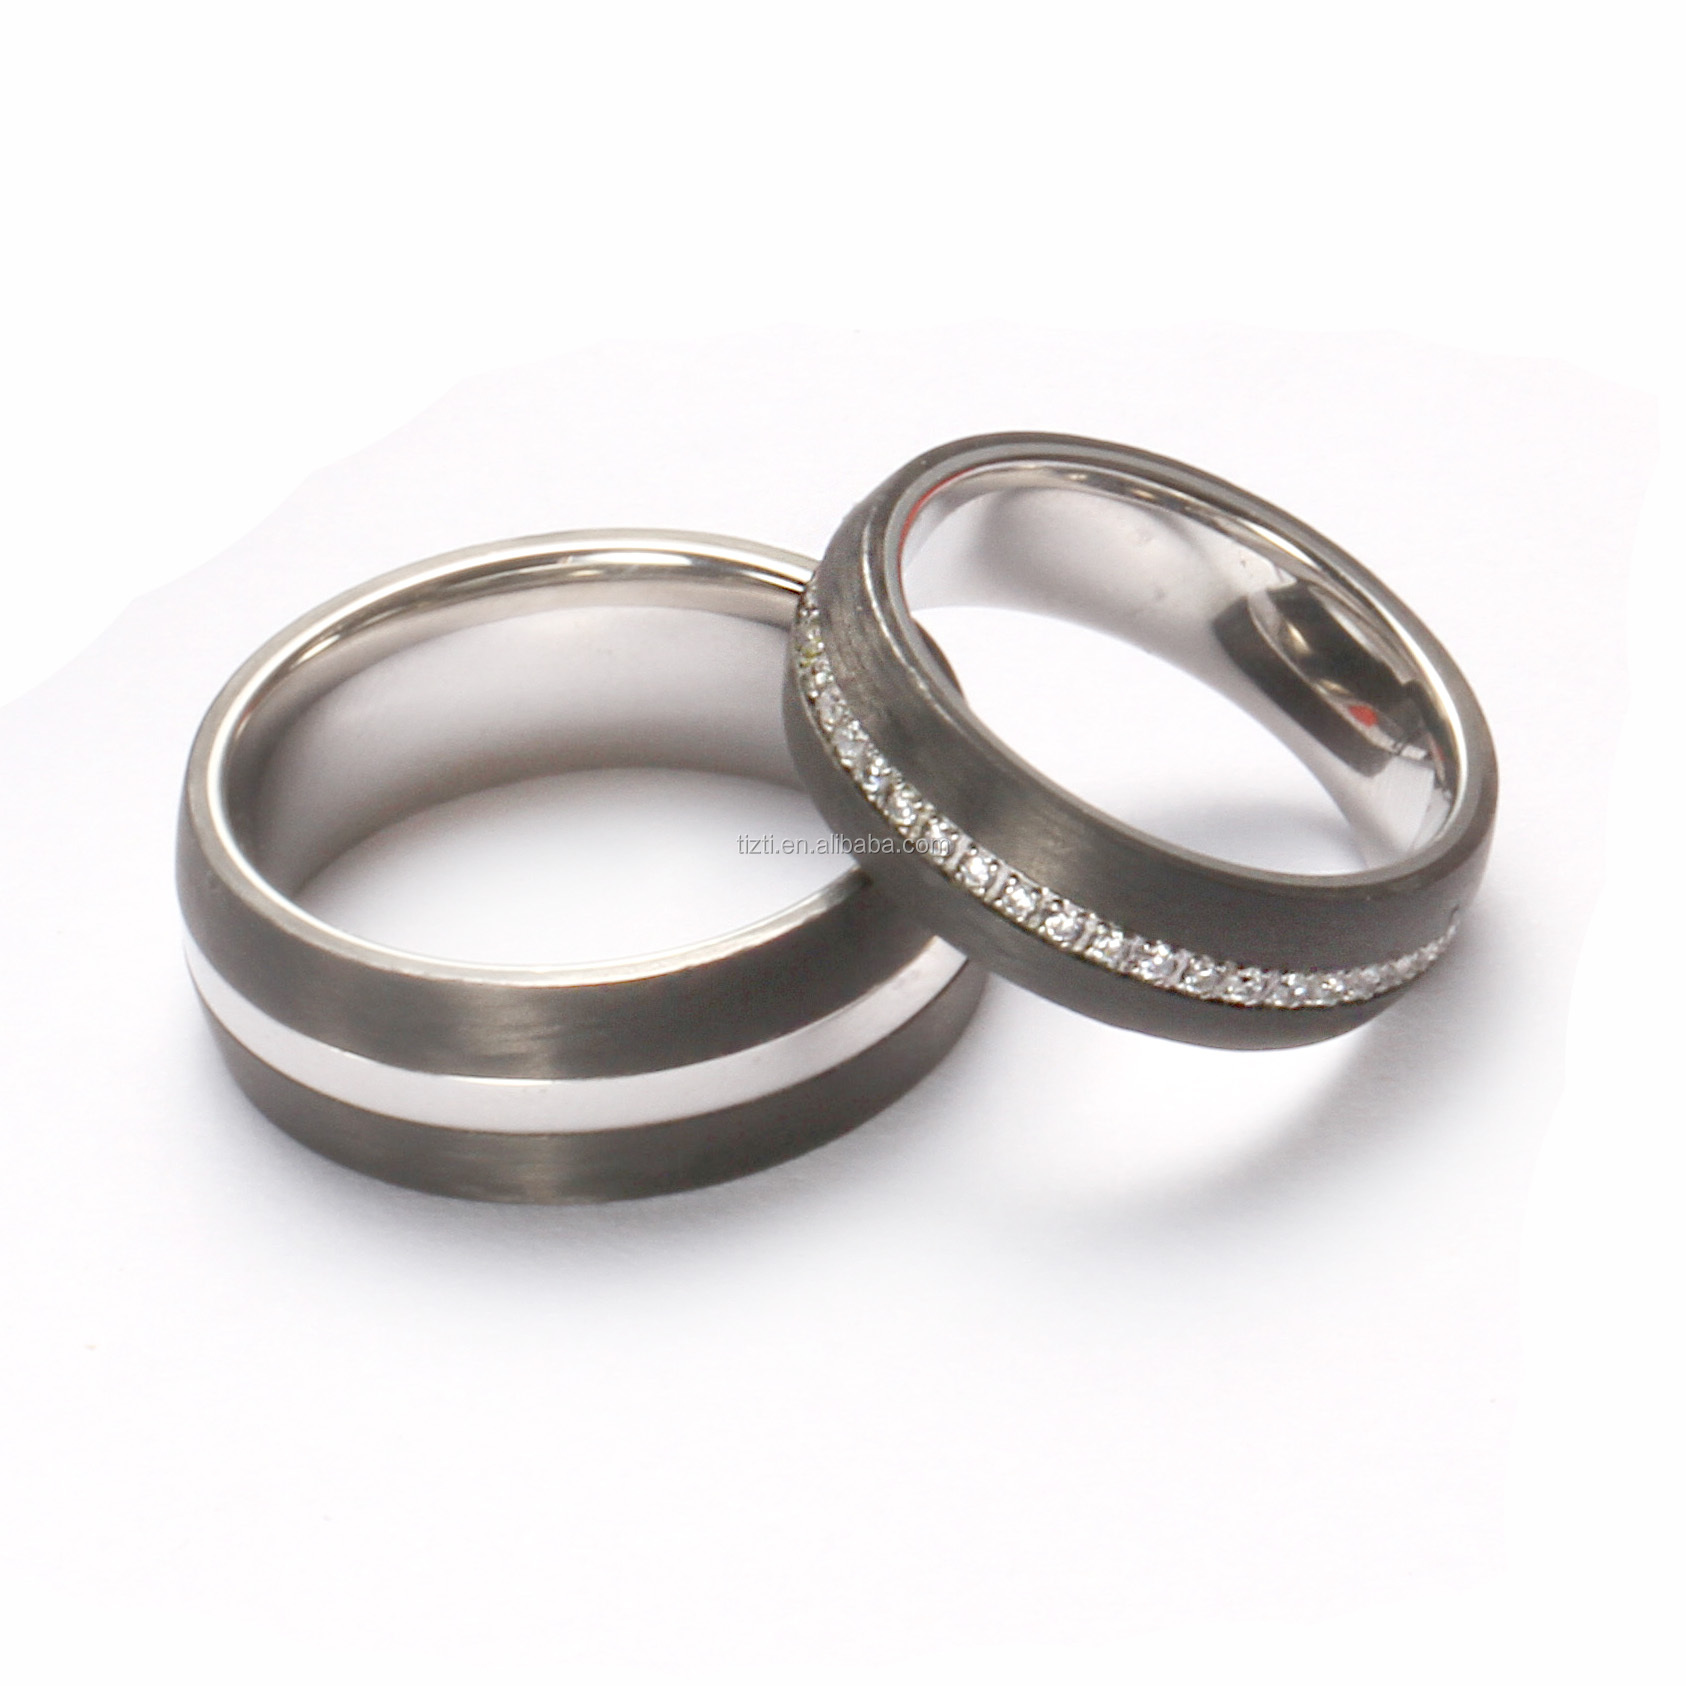 gear steel punisher product image wedding ring stop stainless shop rings products